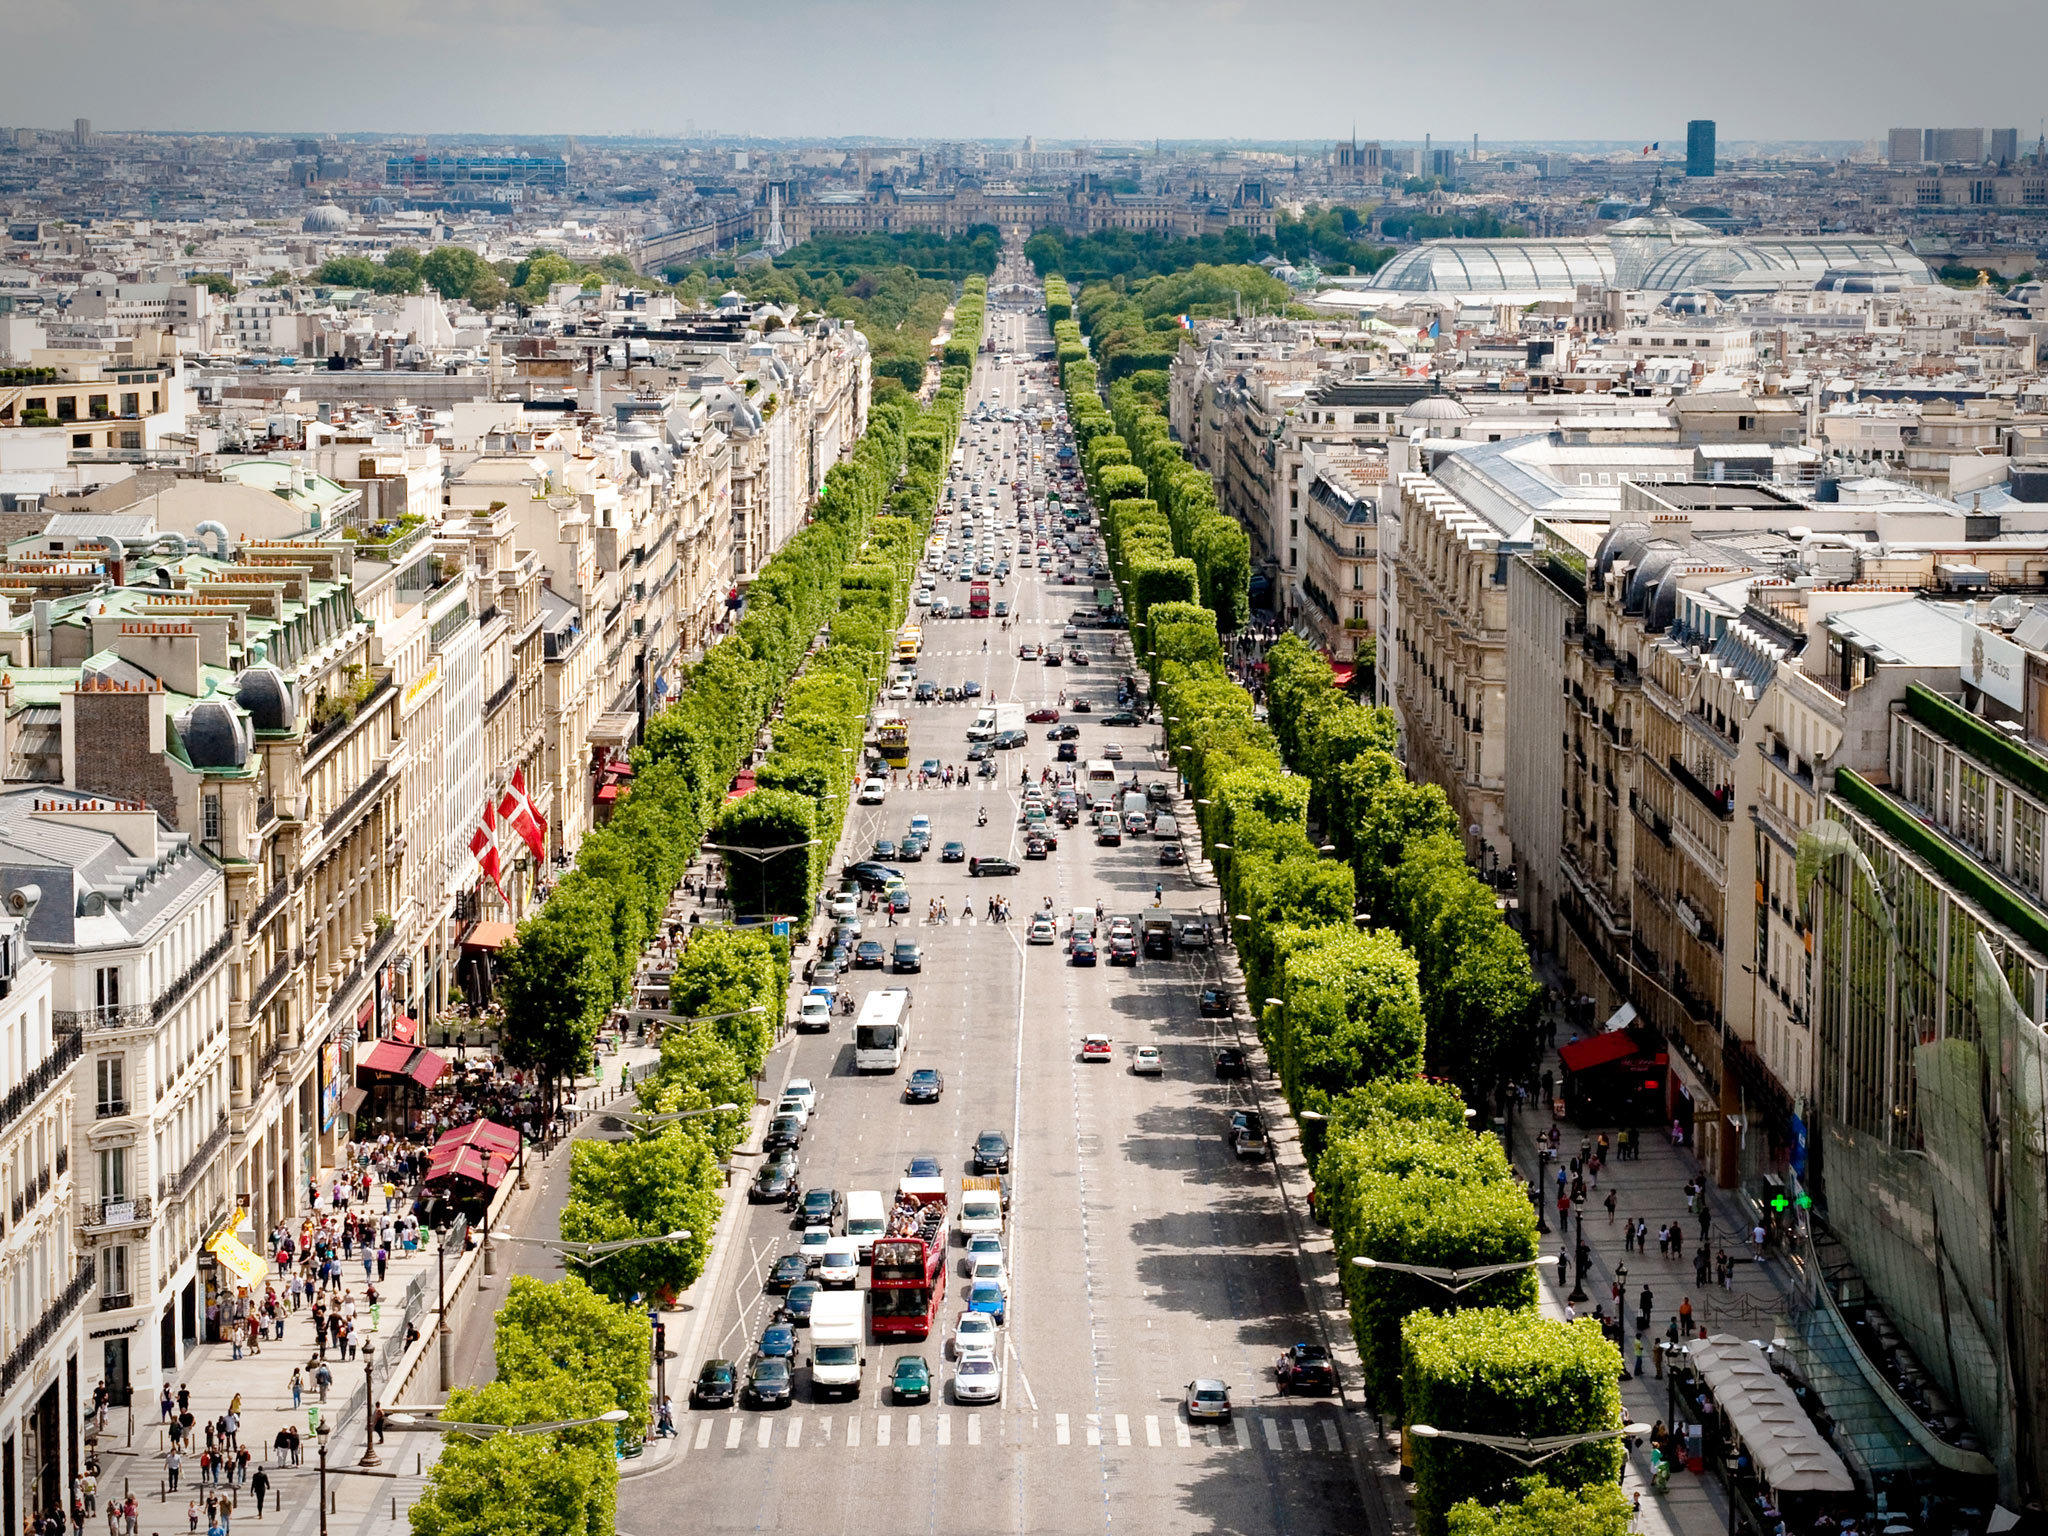 5 big-name shops on the Champs-Elysées